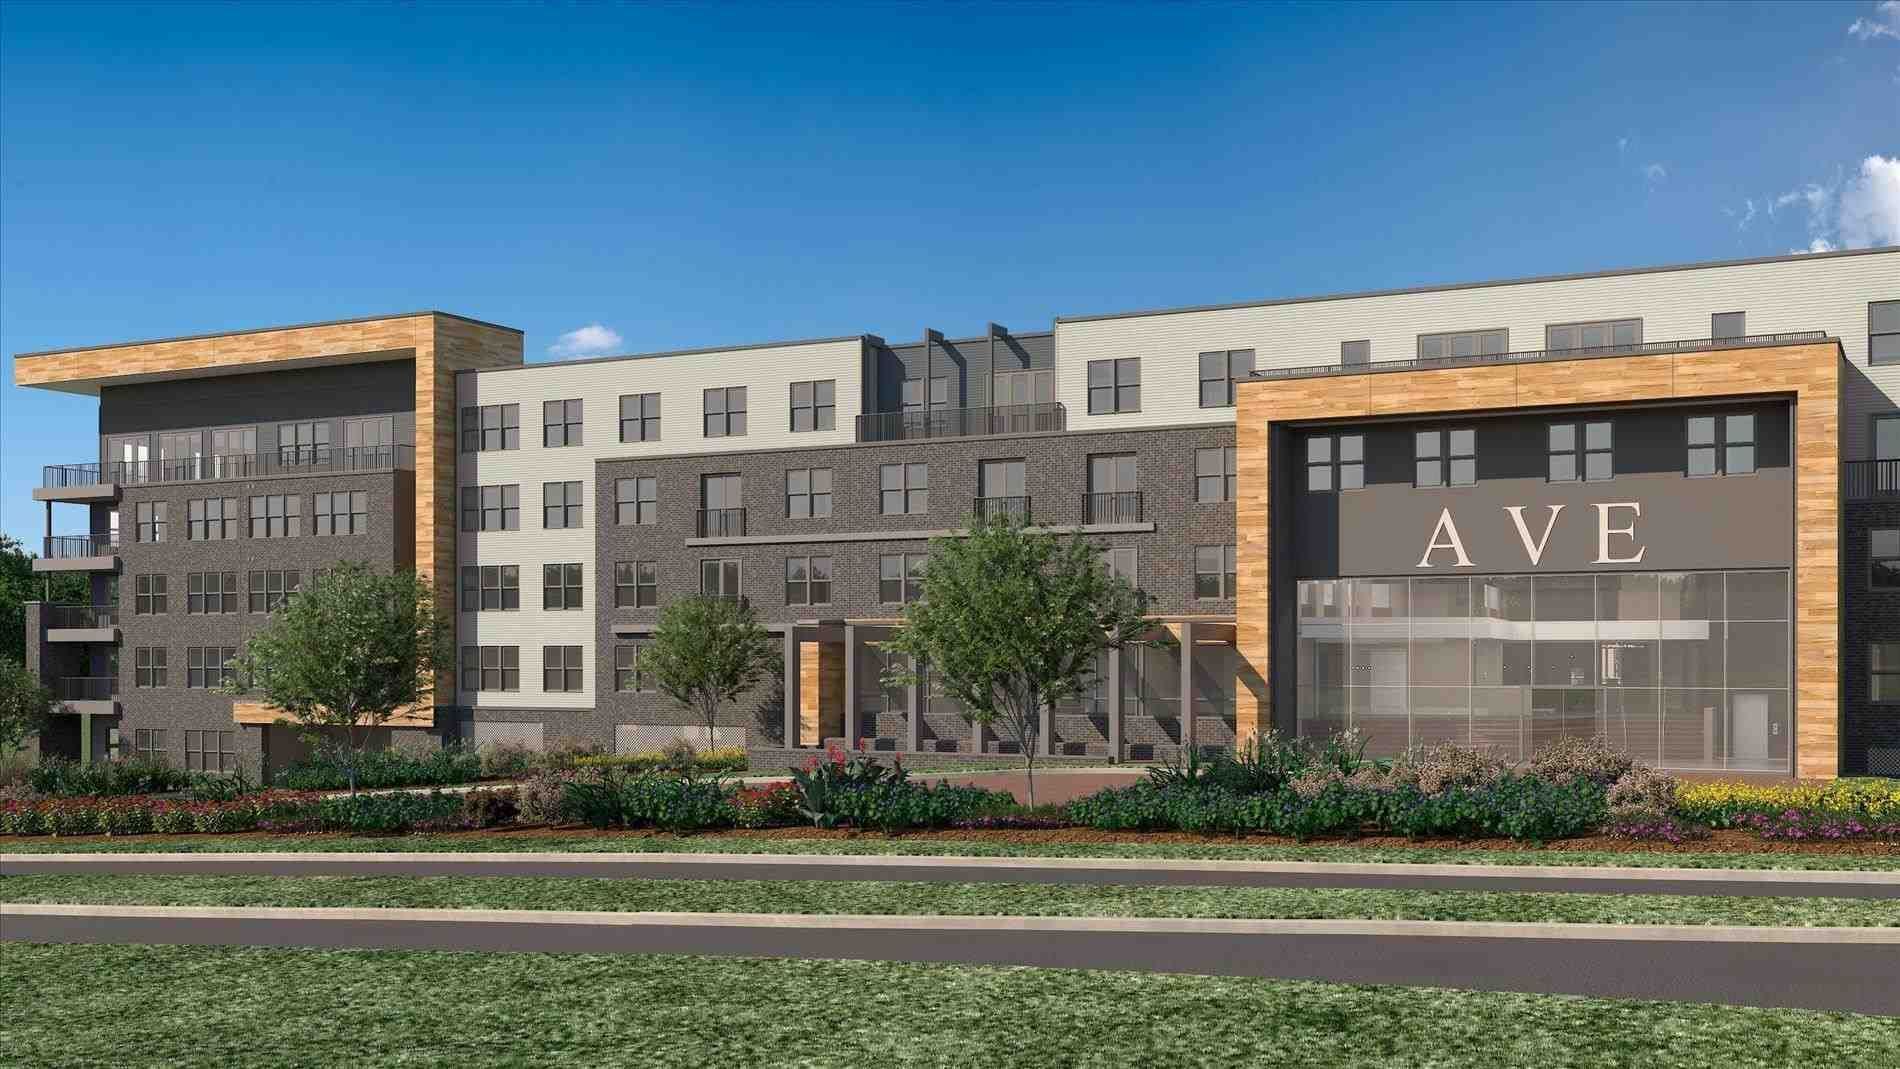 One And Two Bedroom Apartments In Dallas Tx Layouts Dallas Texas Apartment Steadfast Apartment Layout Bedroom Apartment 2 Bedroom Apartment